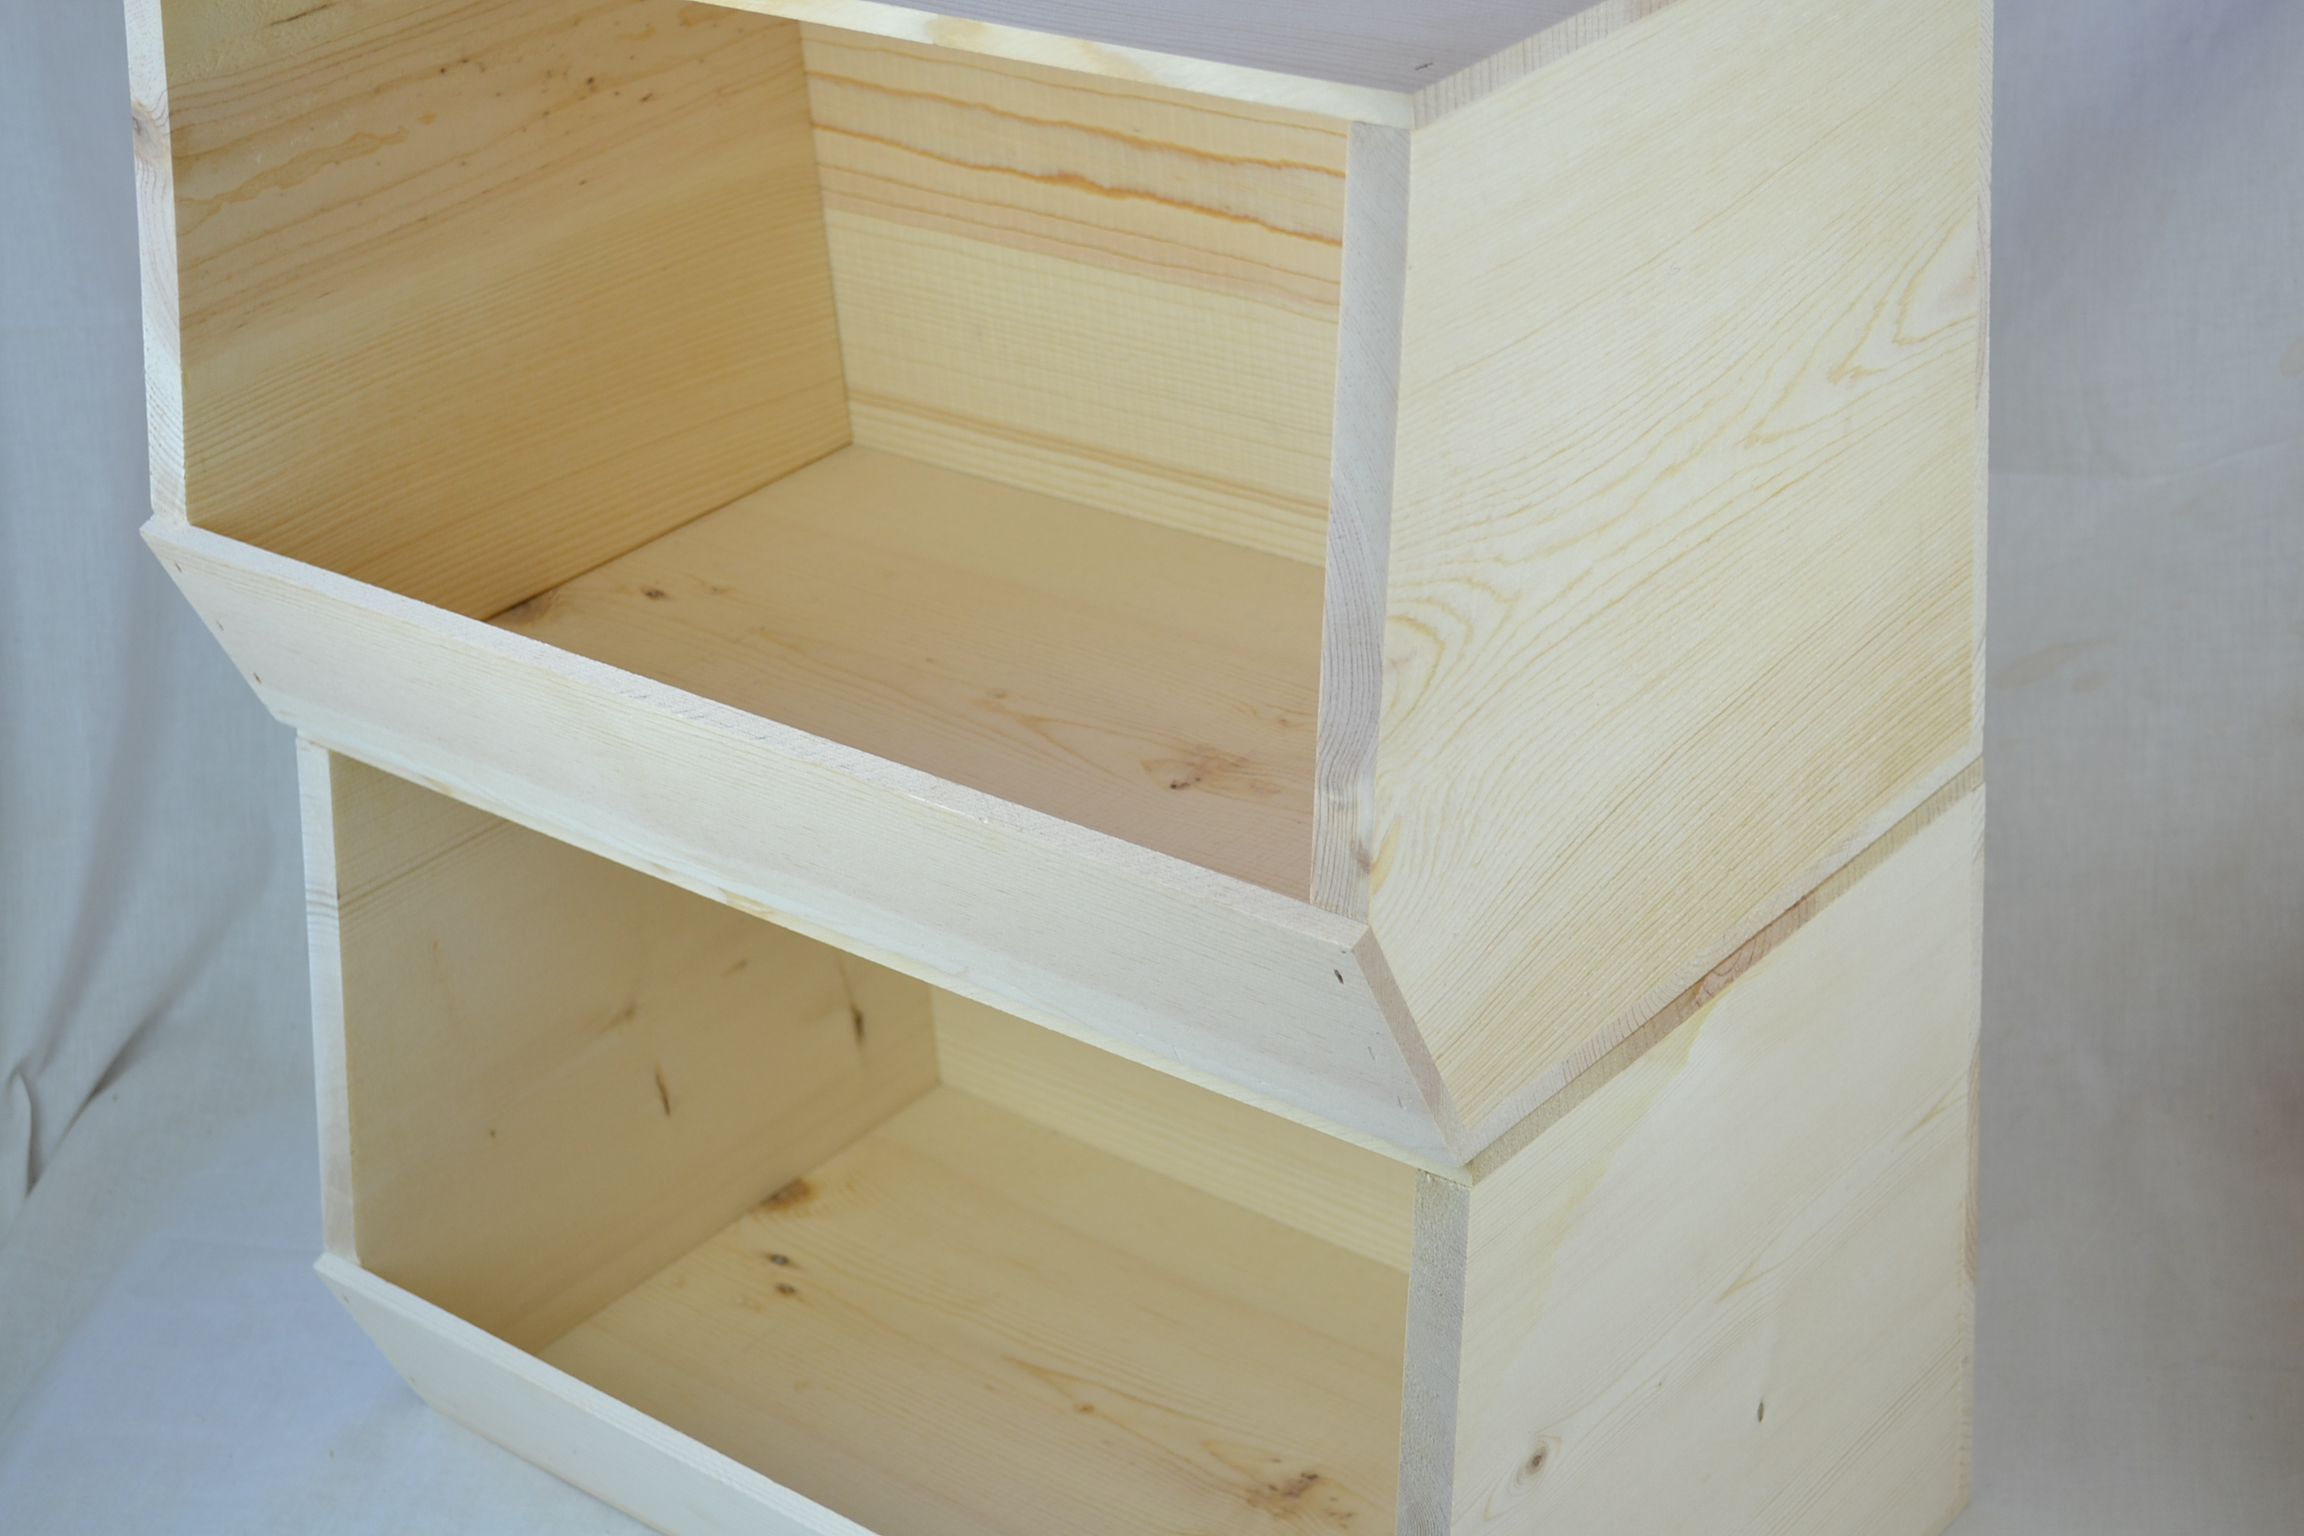 Wooden Stackable Storage Bin Free Shipping On This Item & Stackable Wood Storage Bins - Listitdallas